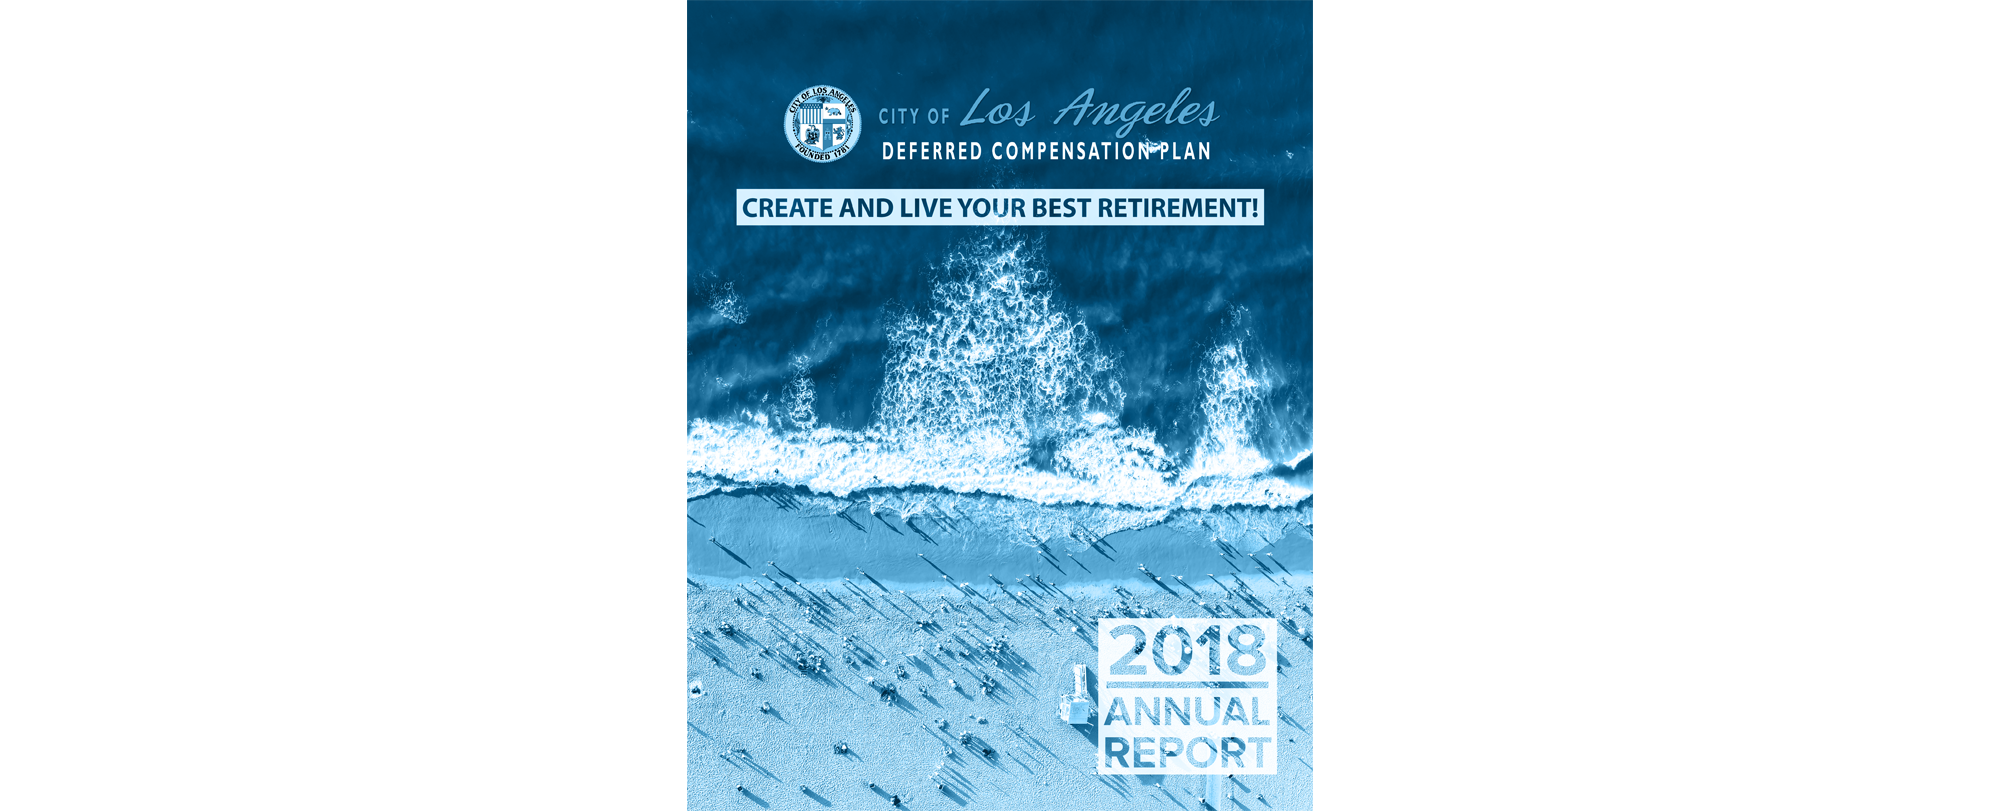 2018 Annual Report Cover Website.png